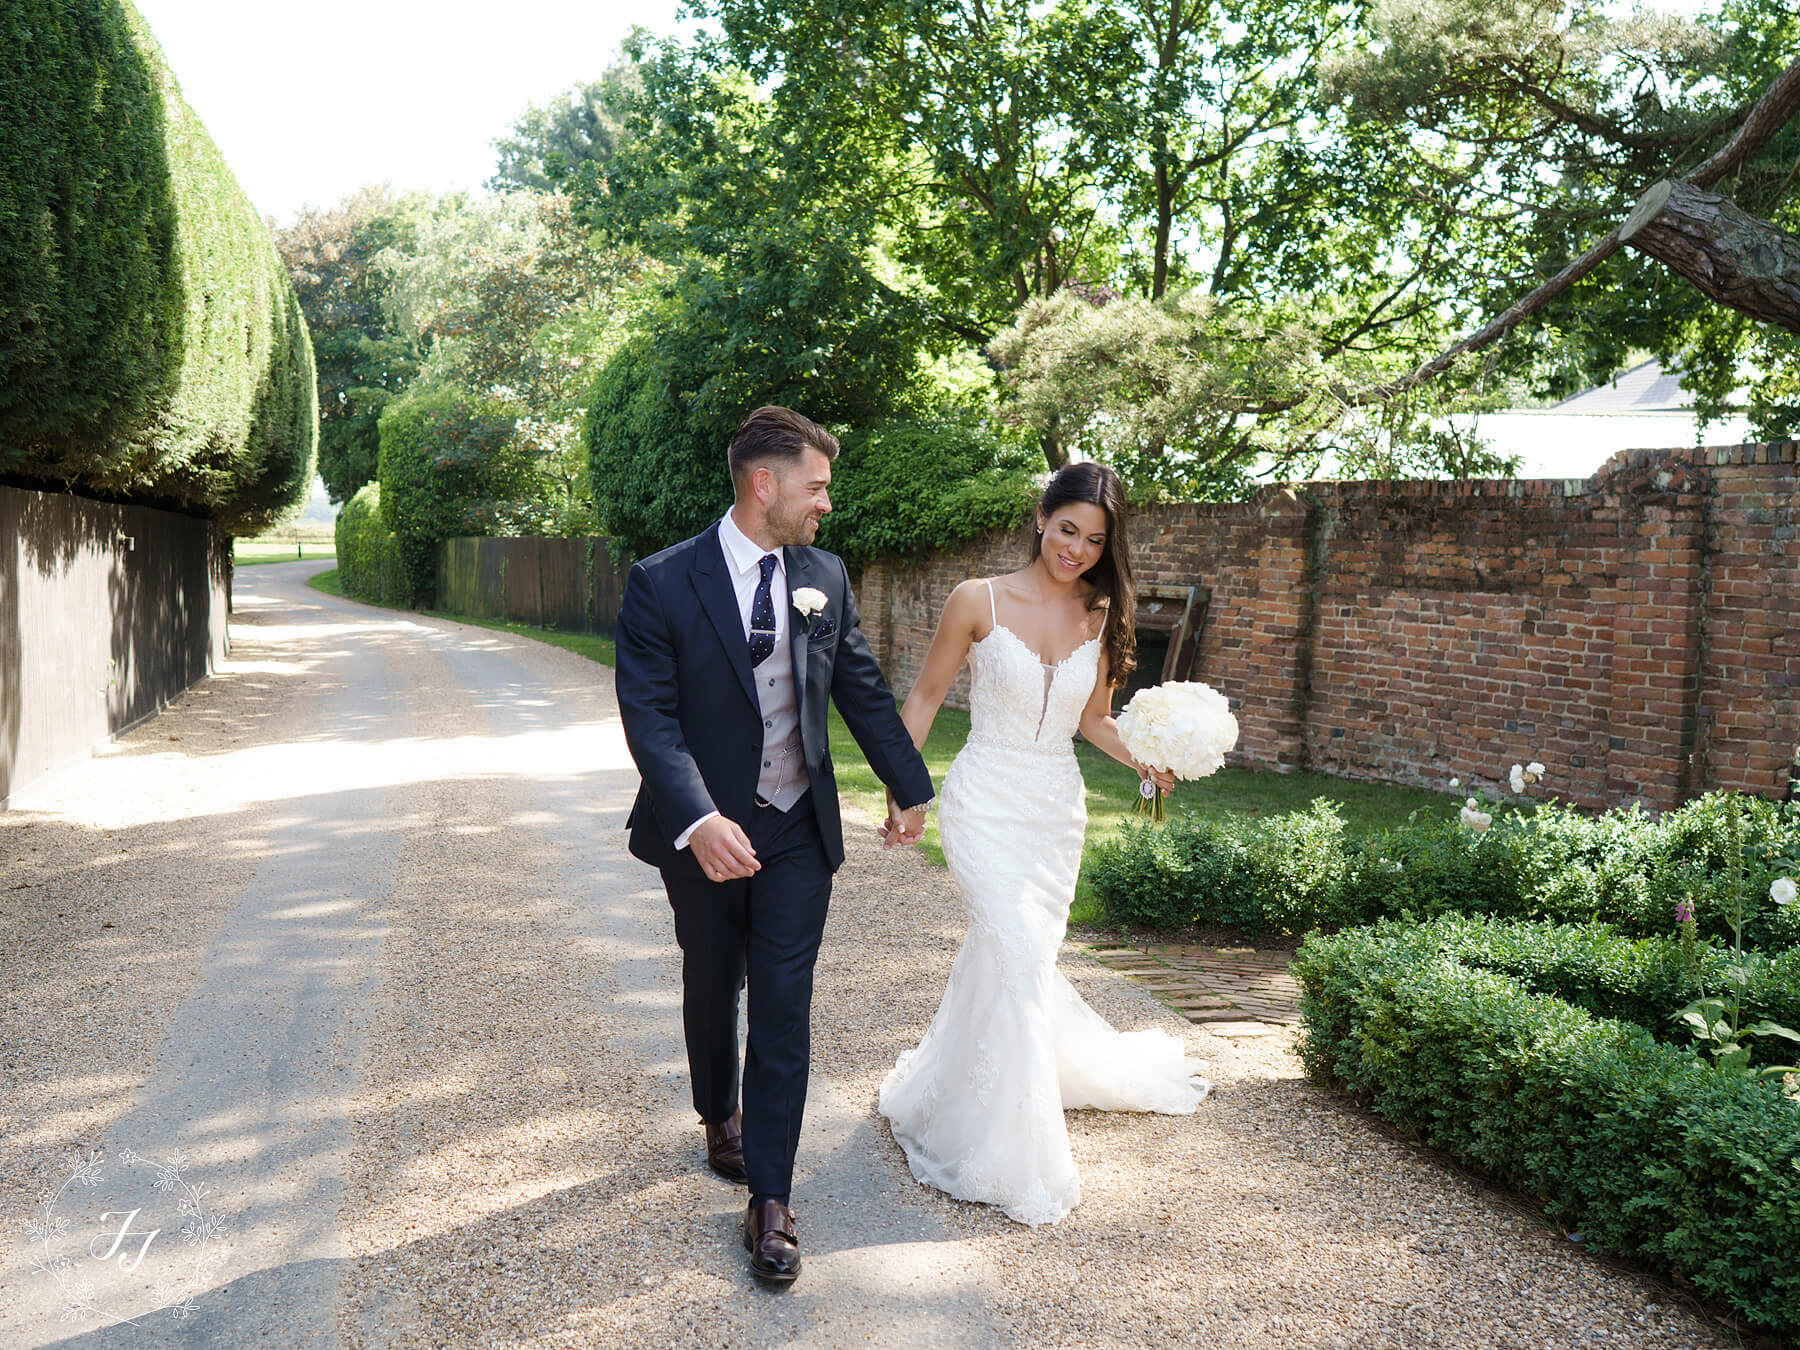 Samantha & Camerons Wedding Photograph